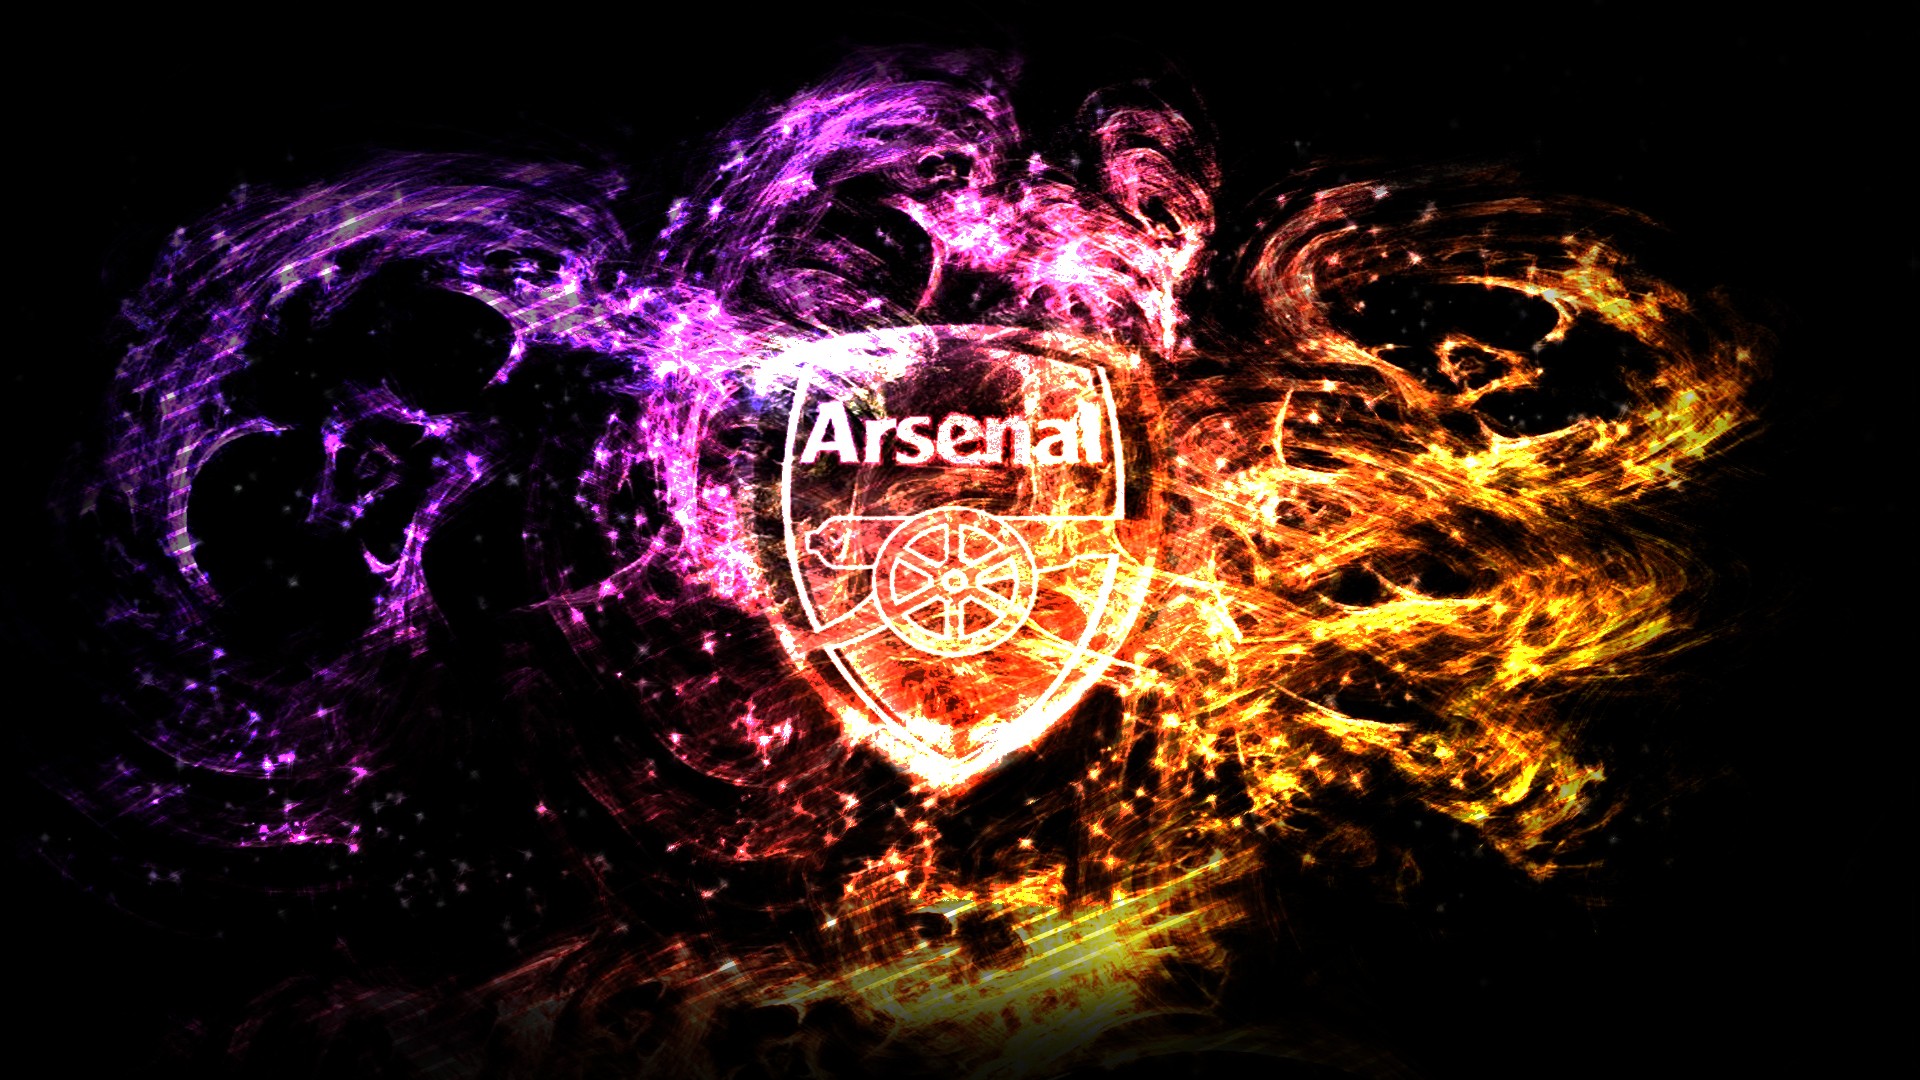 1920x1080px arsenal wallpaper hd wallpapersafari arsenal logo wallpaper fullscreen 11454 wallpaper cool 1920x1080 thecheapjerseys Gallery